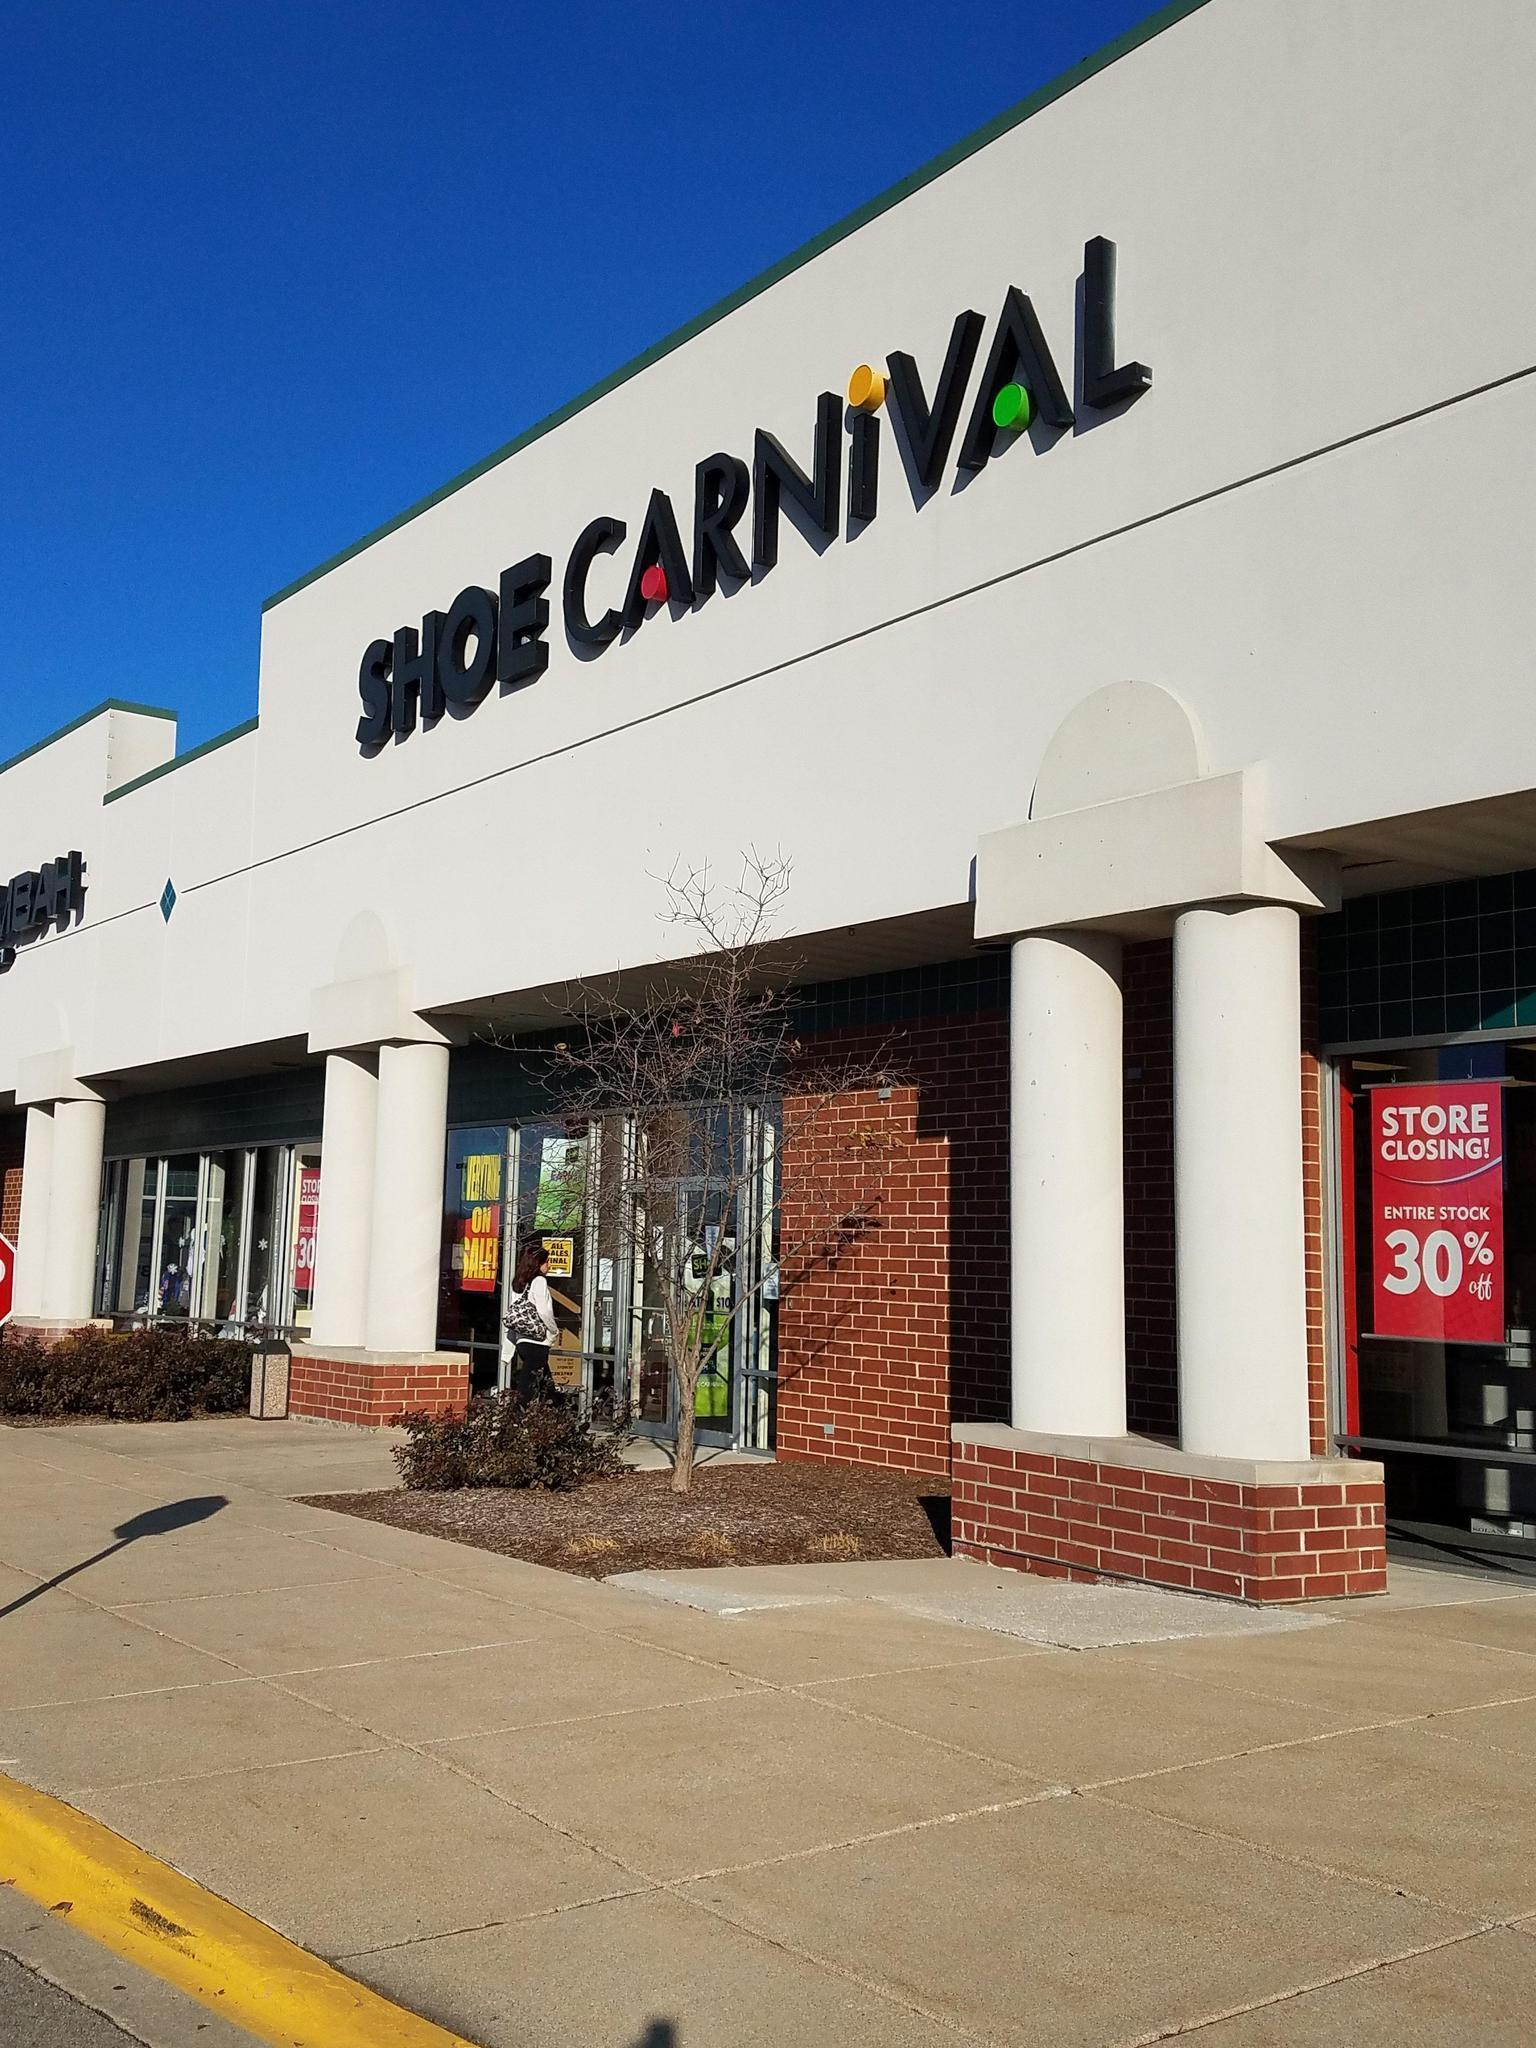 Shoe Carnival, Evansville. M likes. Shoe Carnival makes shoe shopping spontaneous and exciting. You'll get the best deals on the hottest brands when Jump to. Sections of this page. Accessibility Help. Four days only, in-store and online, BOGO 1/2 off and save an extra 15% off! Shop the sale now!